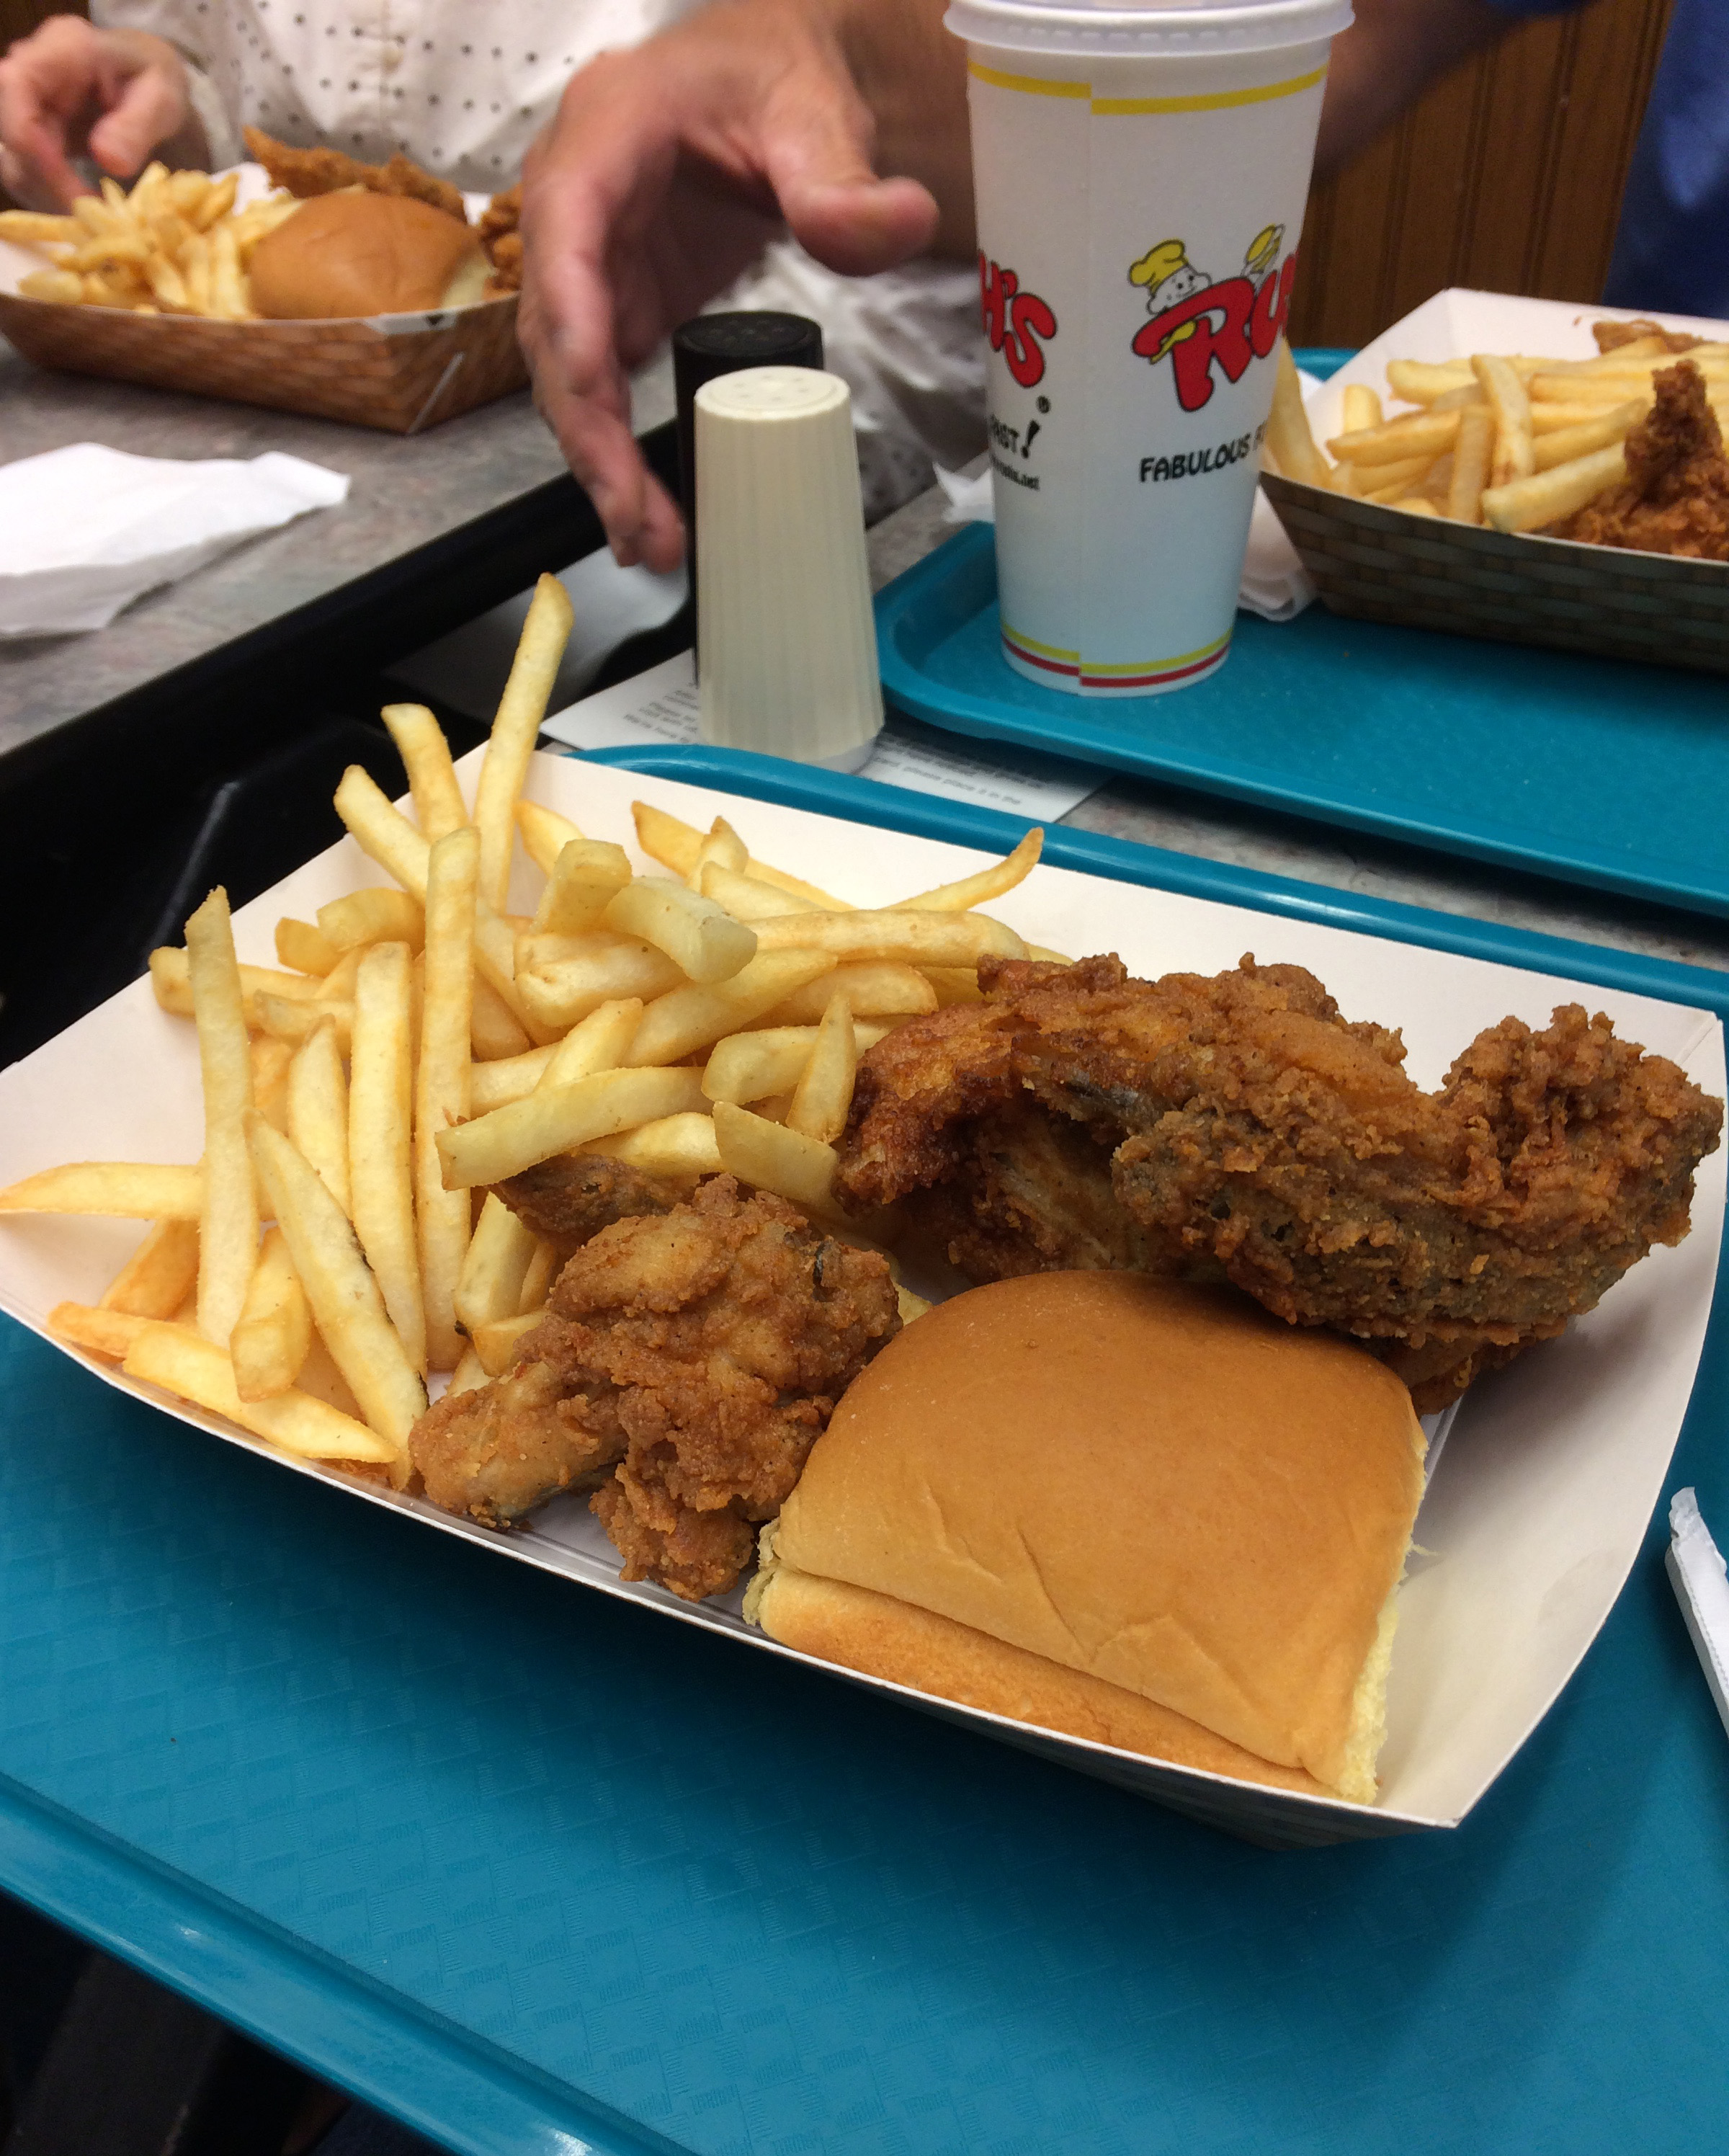 This is my meal at Rush's Chicken on Friday night. Very good food!